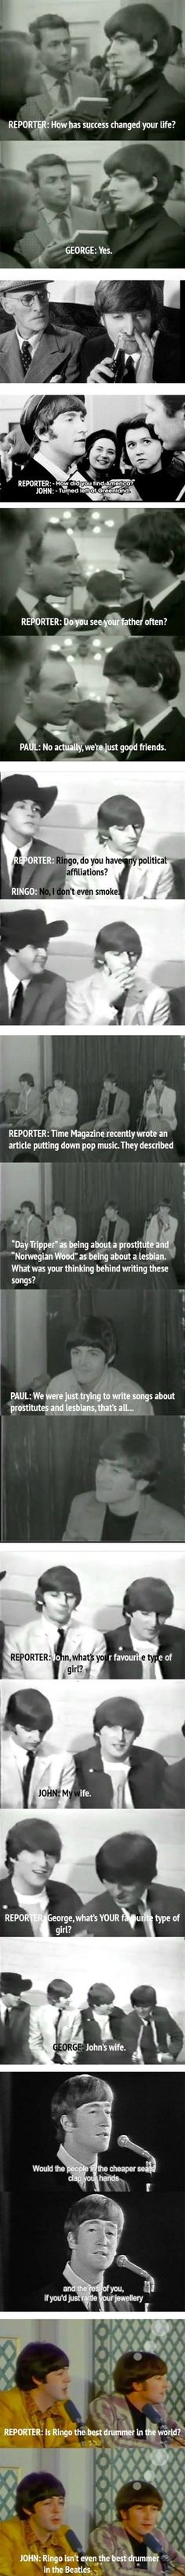 How to Give Interviews, by The Beatles